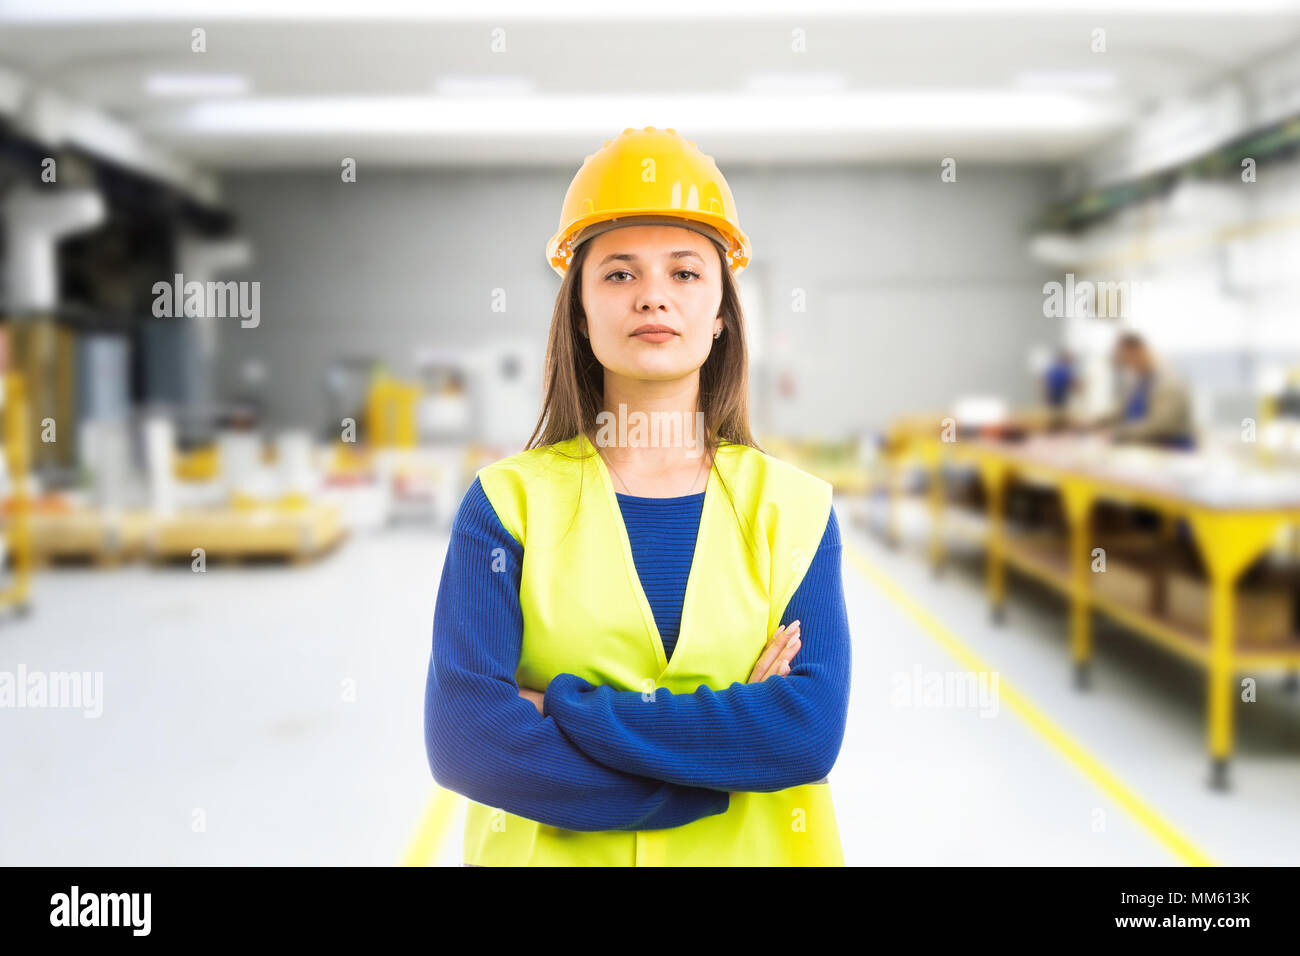 Proud confident young woman engineer with arms crossed as professional supervisor concept on indoor factory background - Stock Image